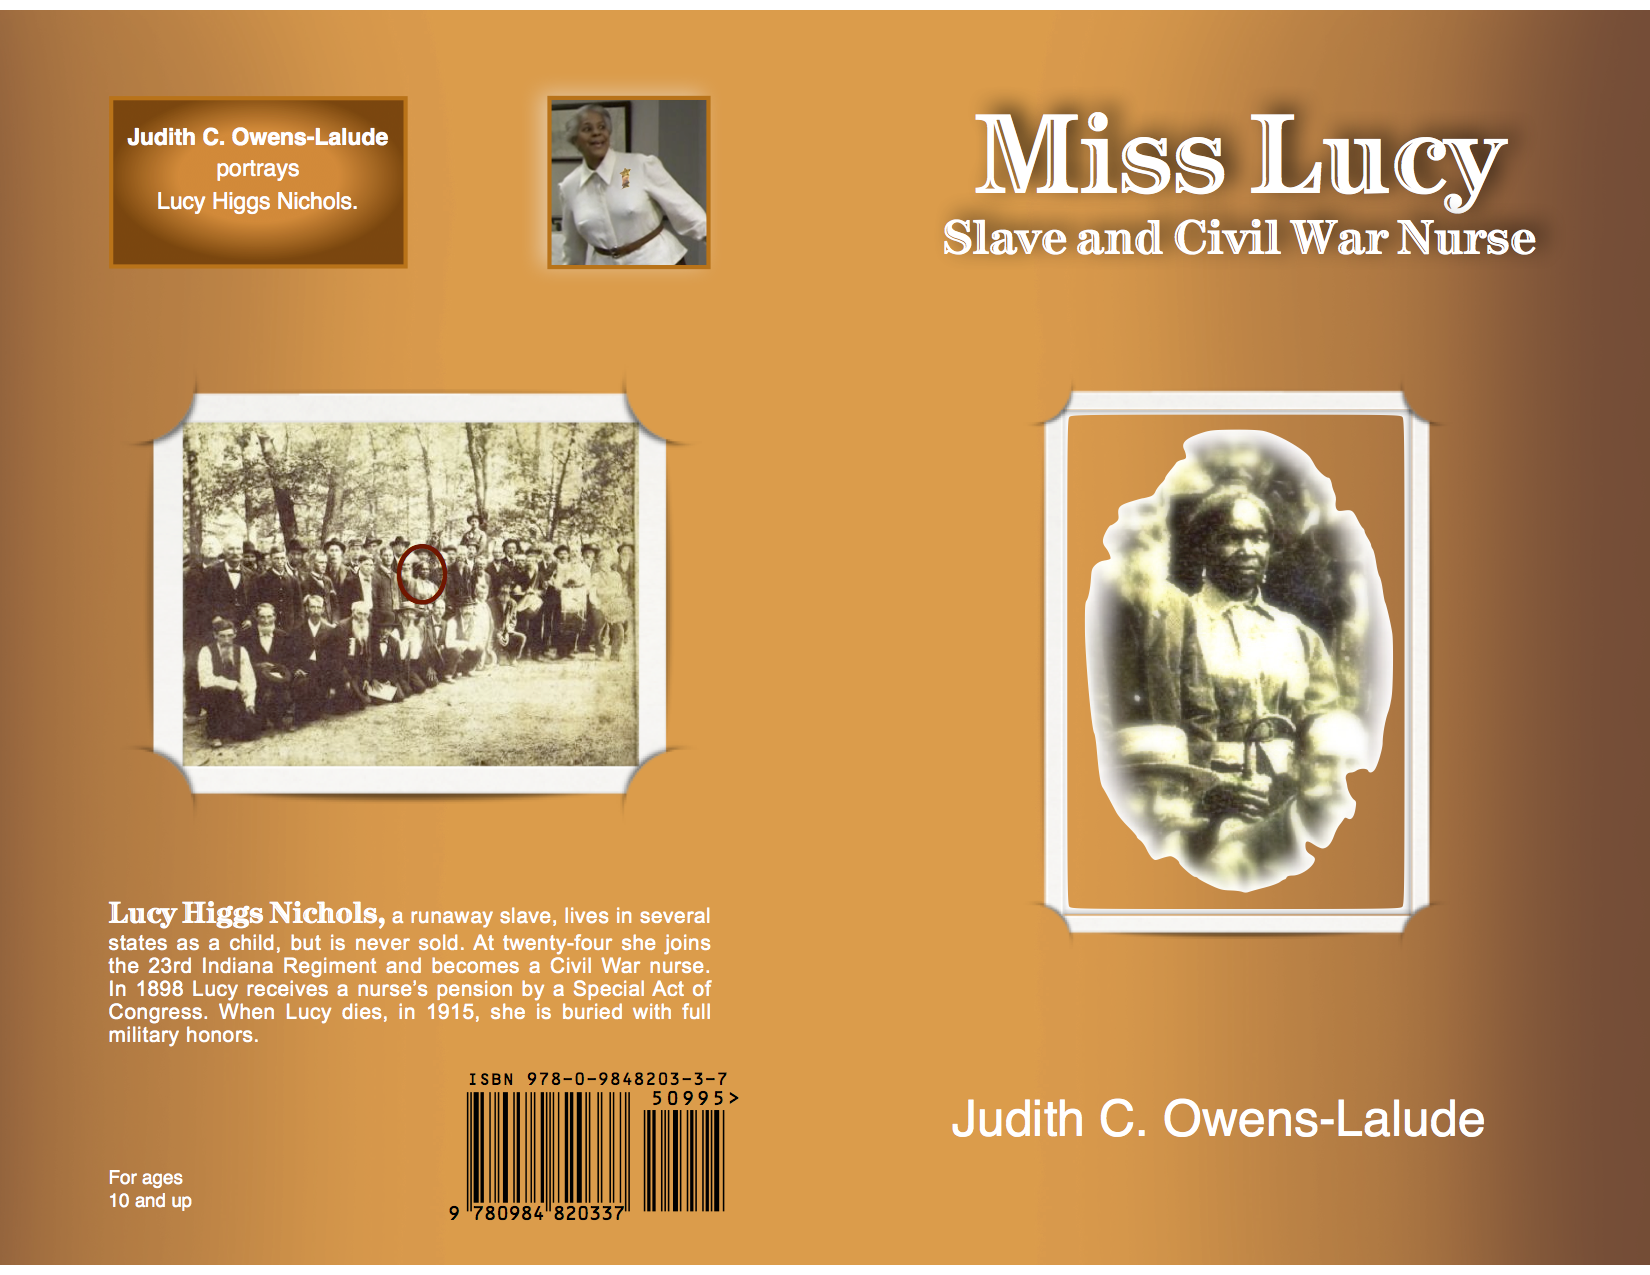 Lucy - Book Cover 9.95 - New - 10 & up